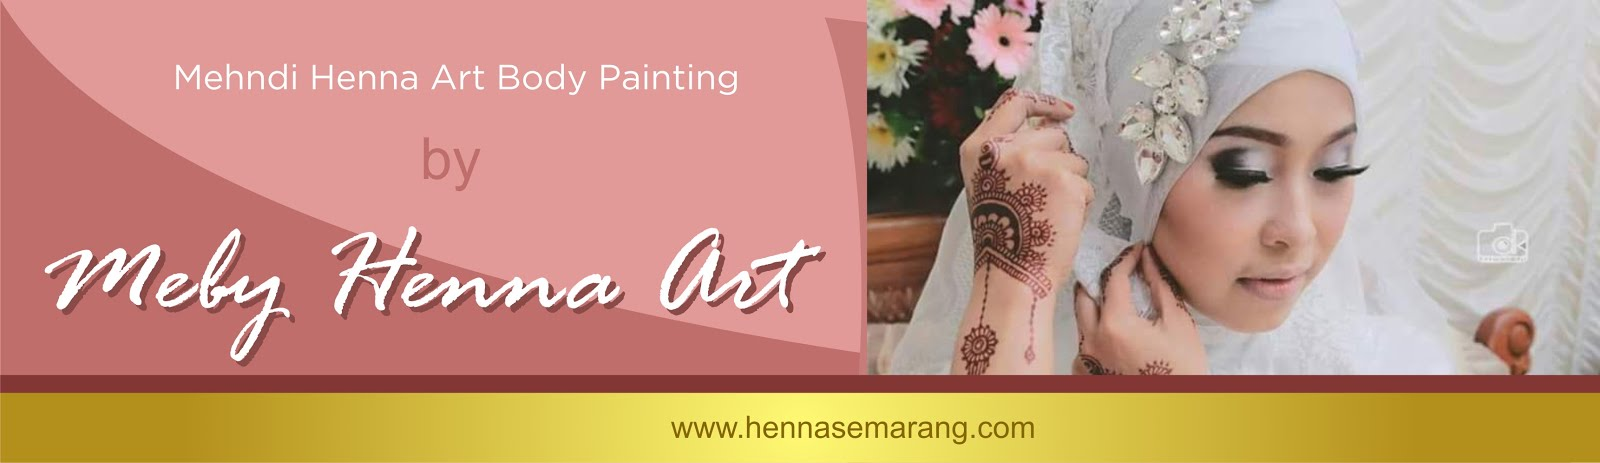 Henna Art Body Painting For Wedding